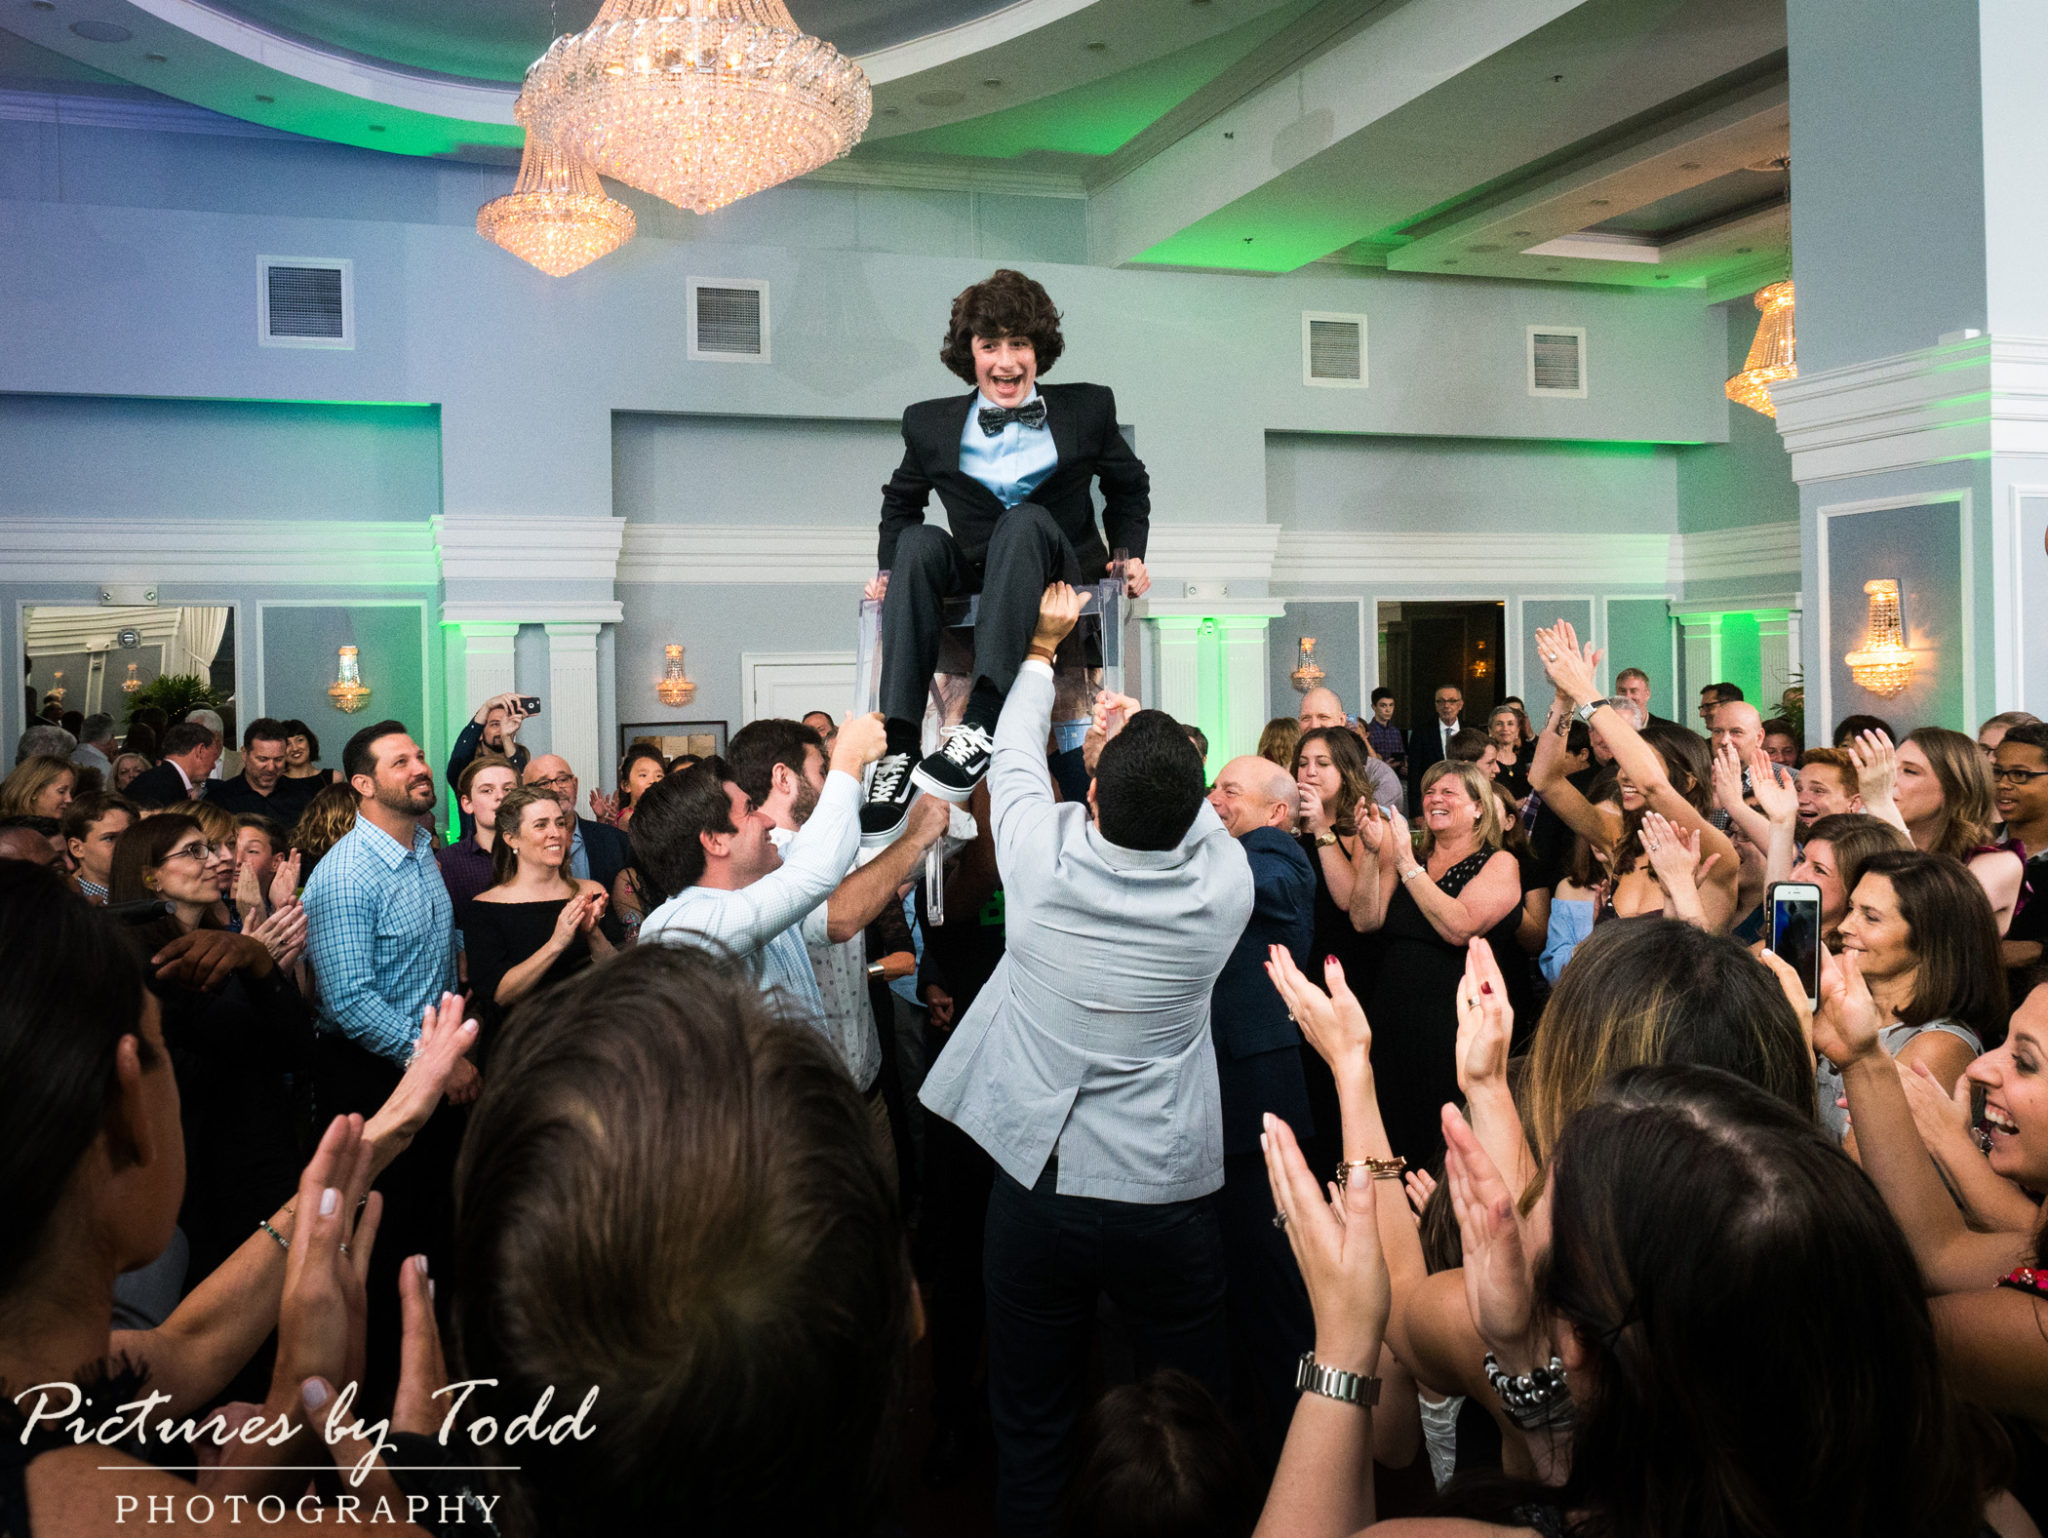 Pictures By Todd Photography Blake S Bar Mitzvah Arts